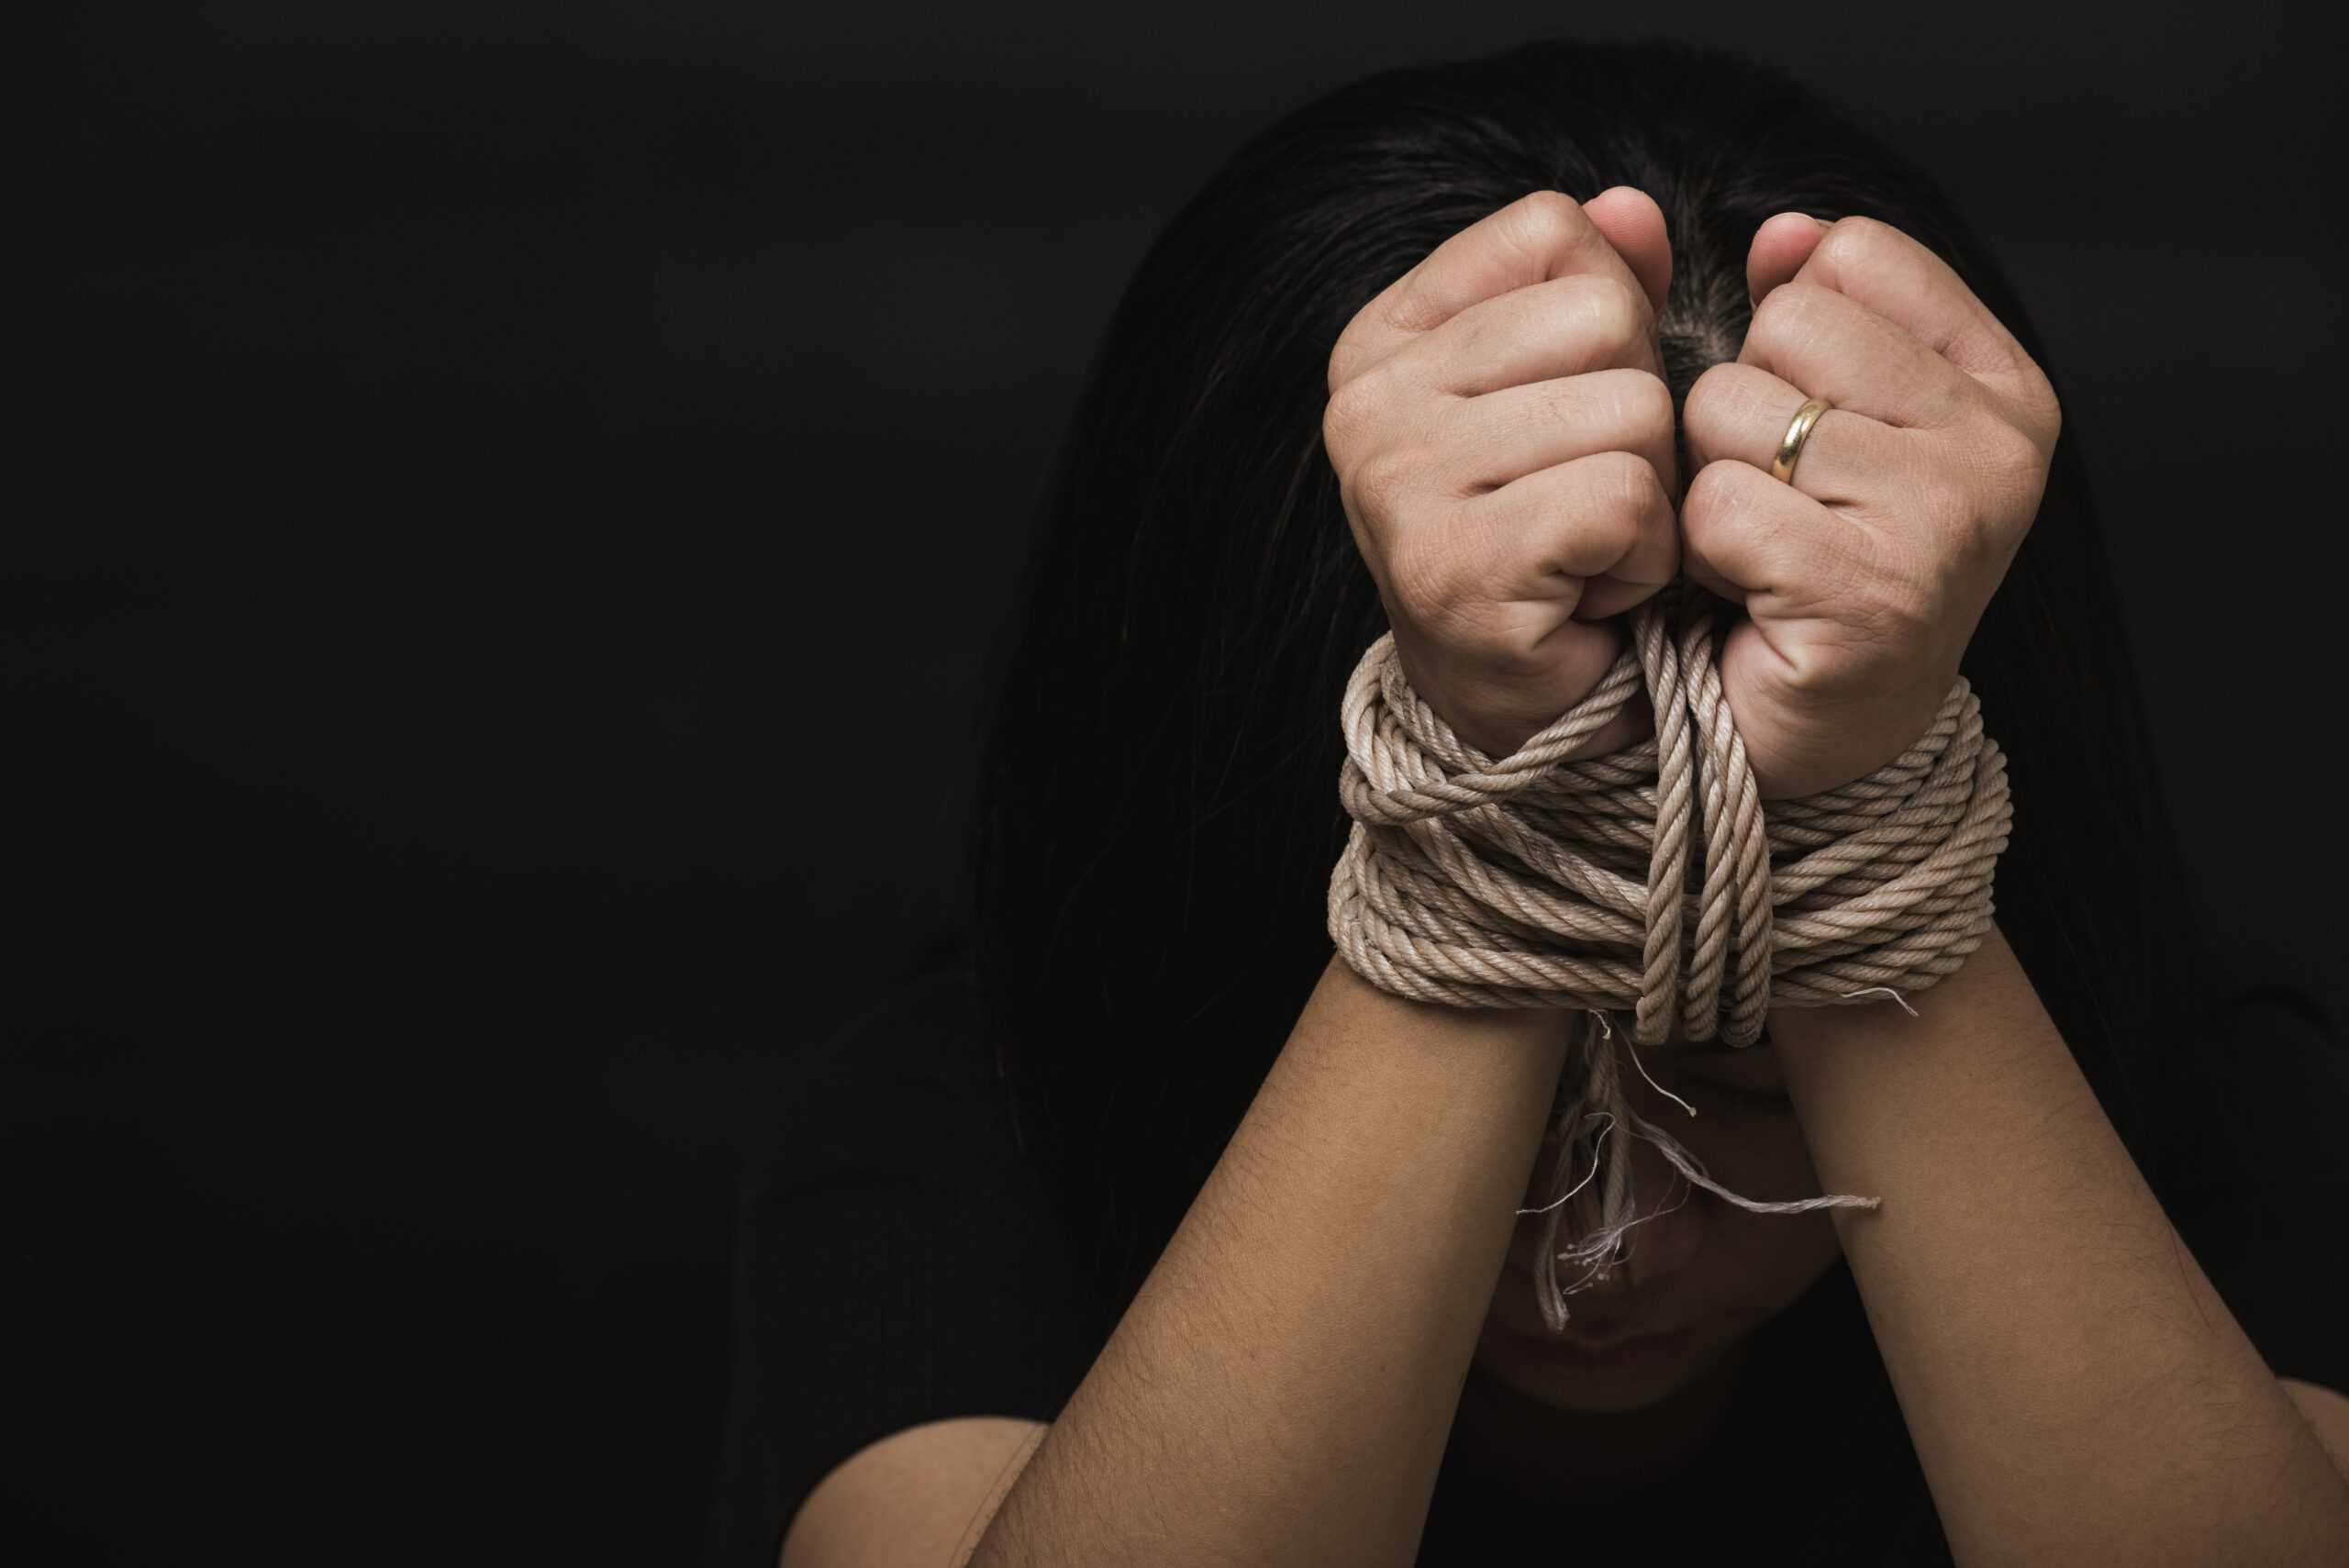 slave woman fears she was hands tied up with rope